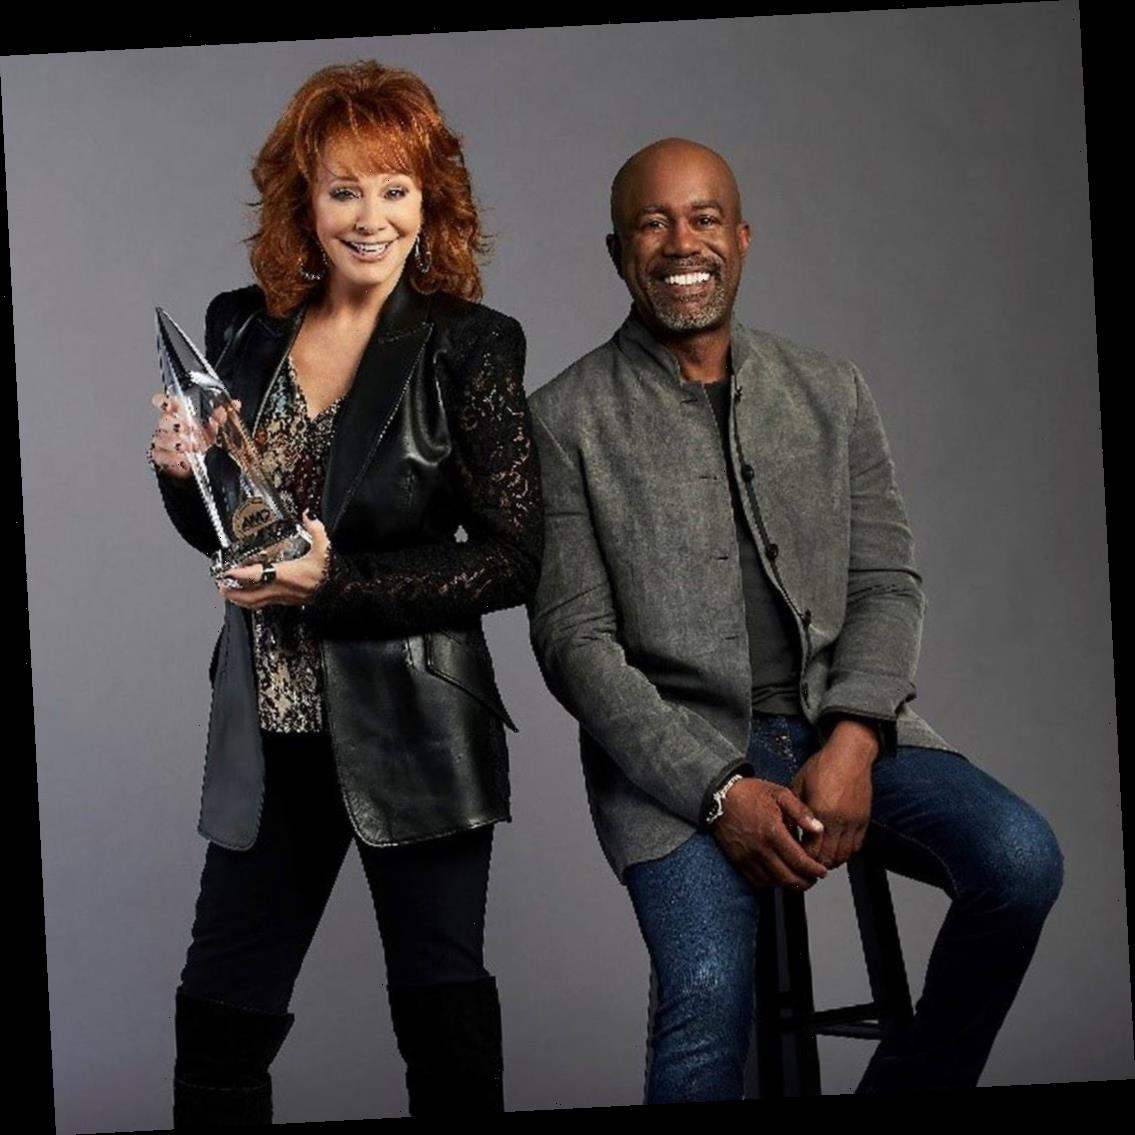 Reba McEntire and Darius Rucker Tease What's to Come for the 2020 CMA Awards